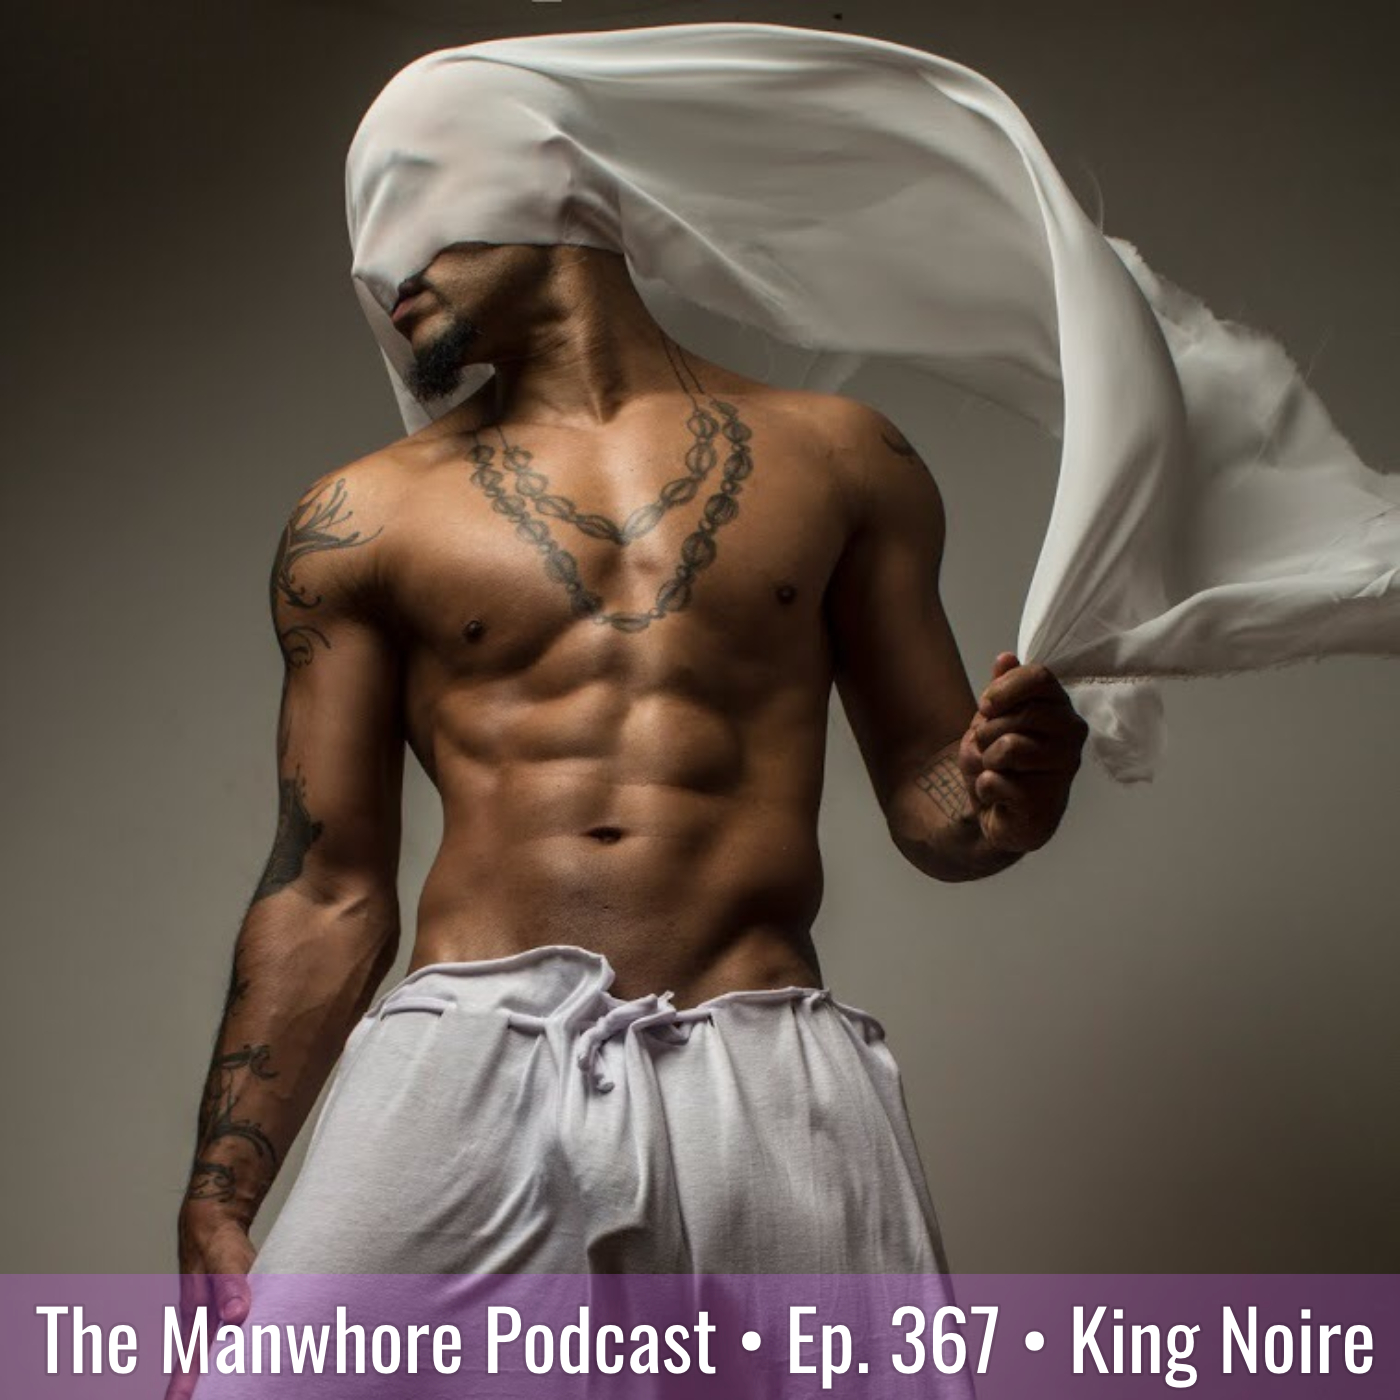 The Manwhore Podcast: A Sex-Positive Quest - Ep: 367: Getting Paid To Bang Your Wife...and other stories with King Noire